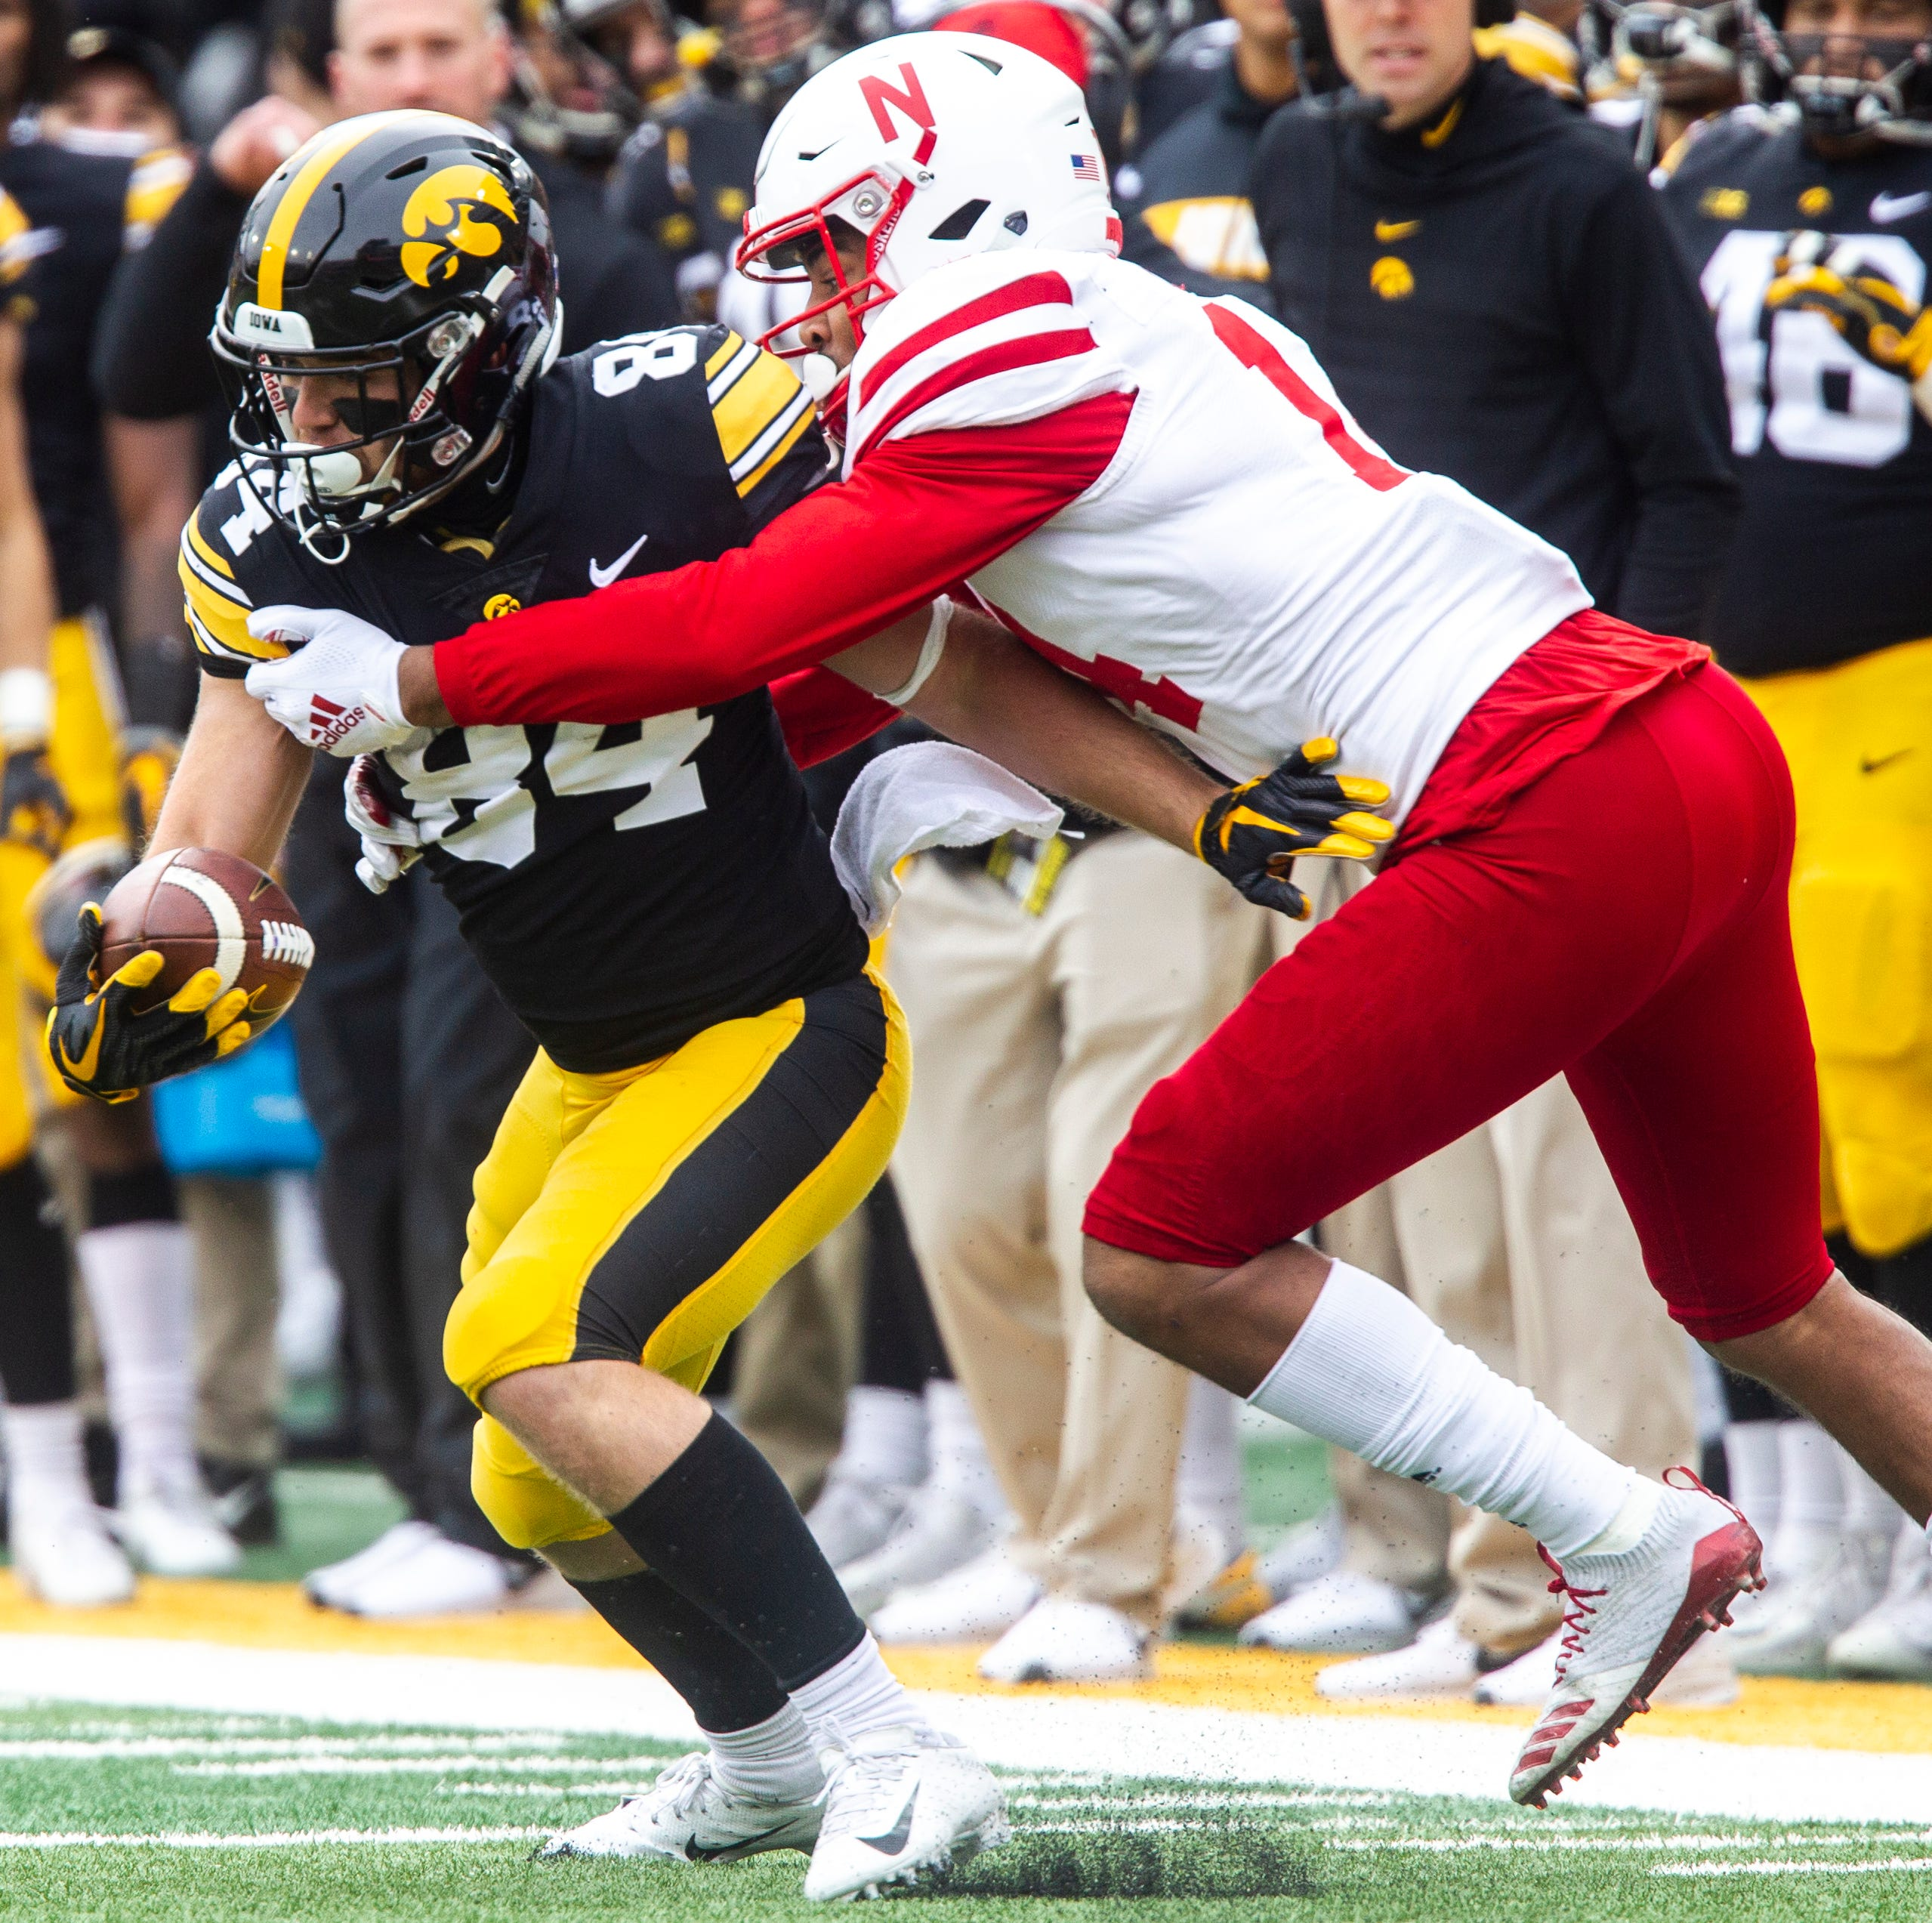 NFL Draft: Former Hawkeyes Nick Easley, Ross Reynolds sign priority free-agent deals